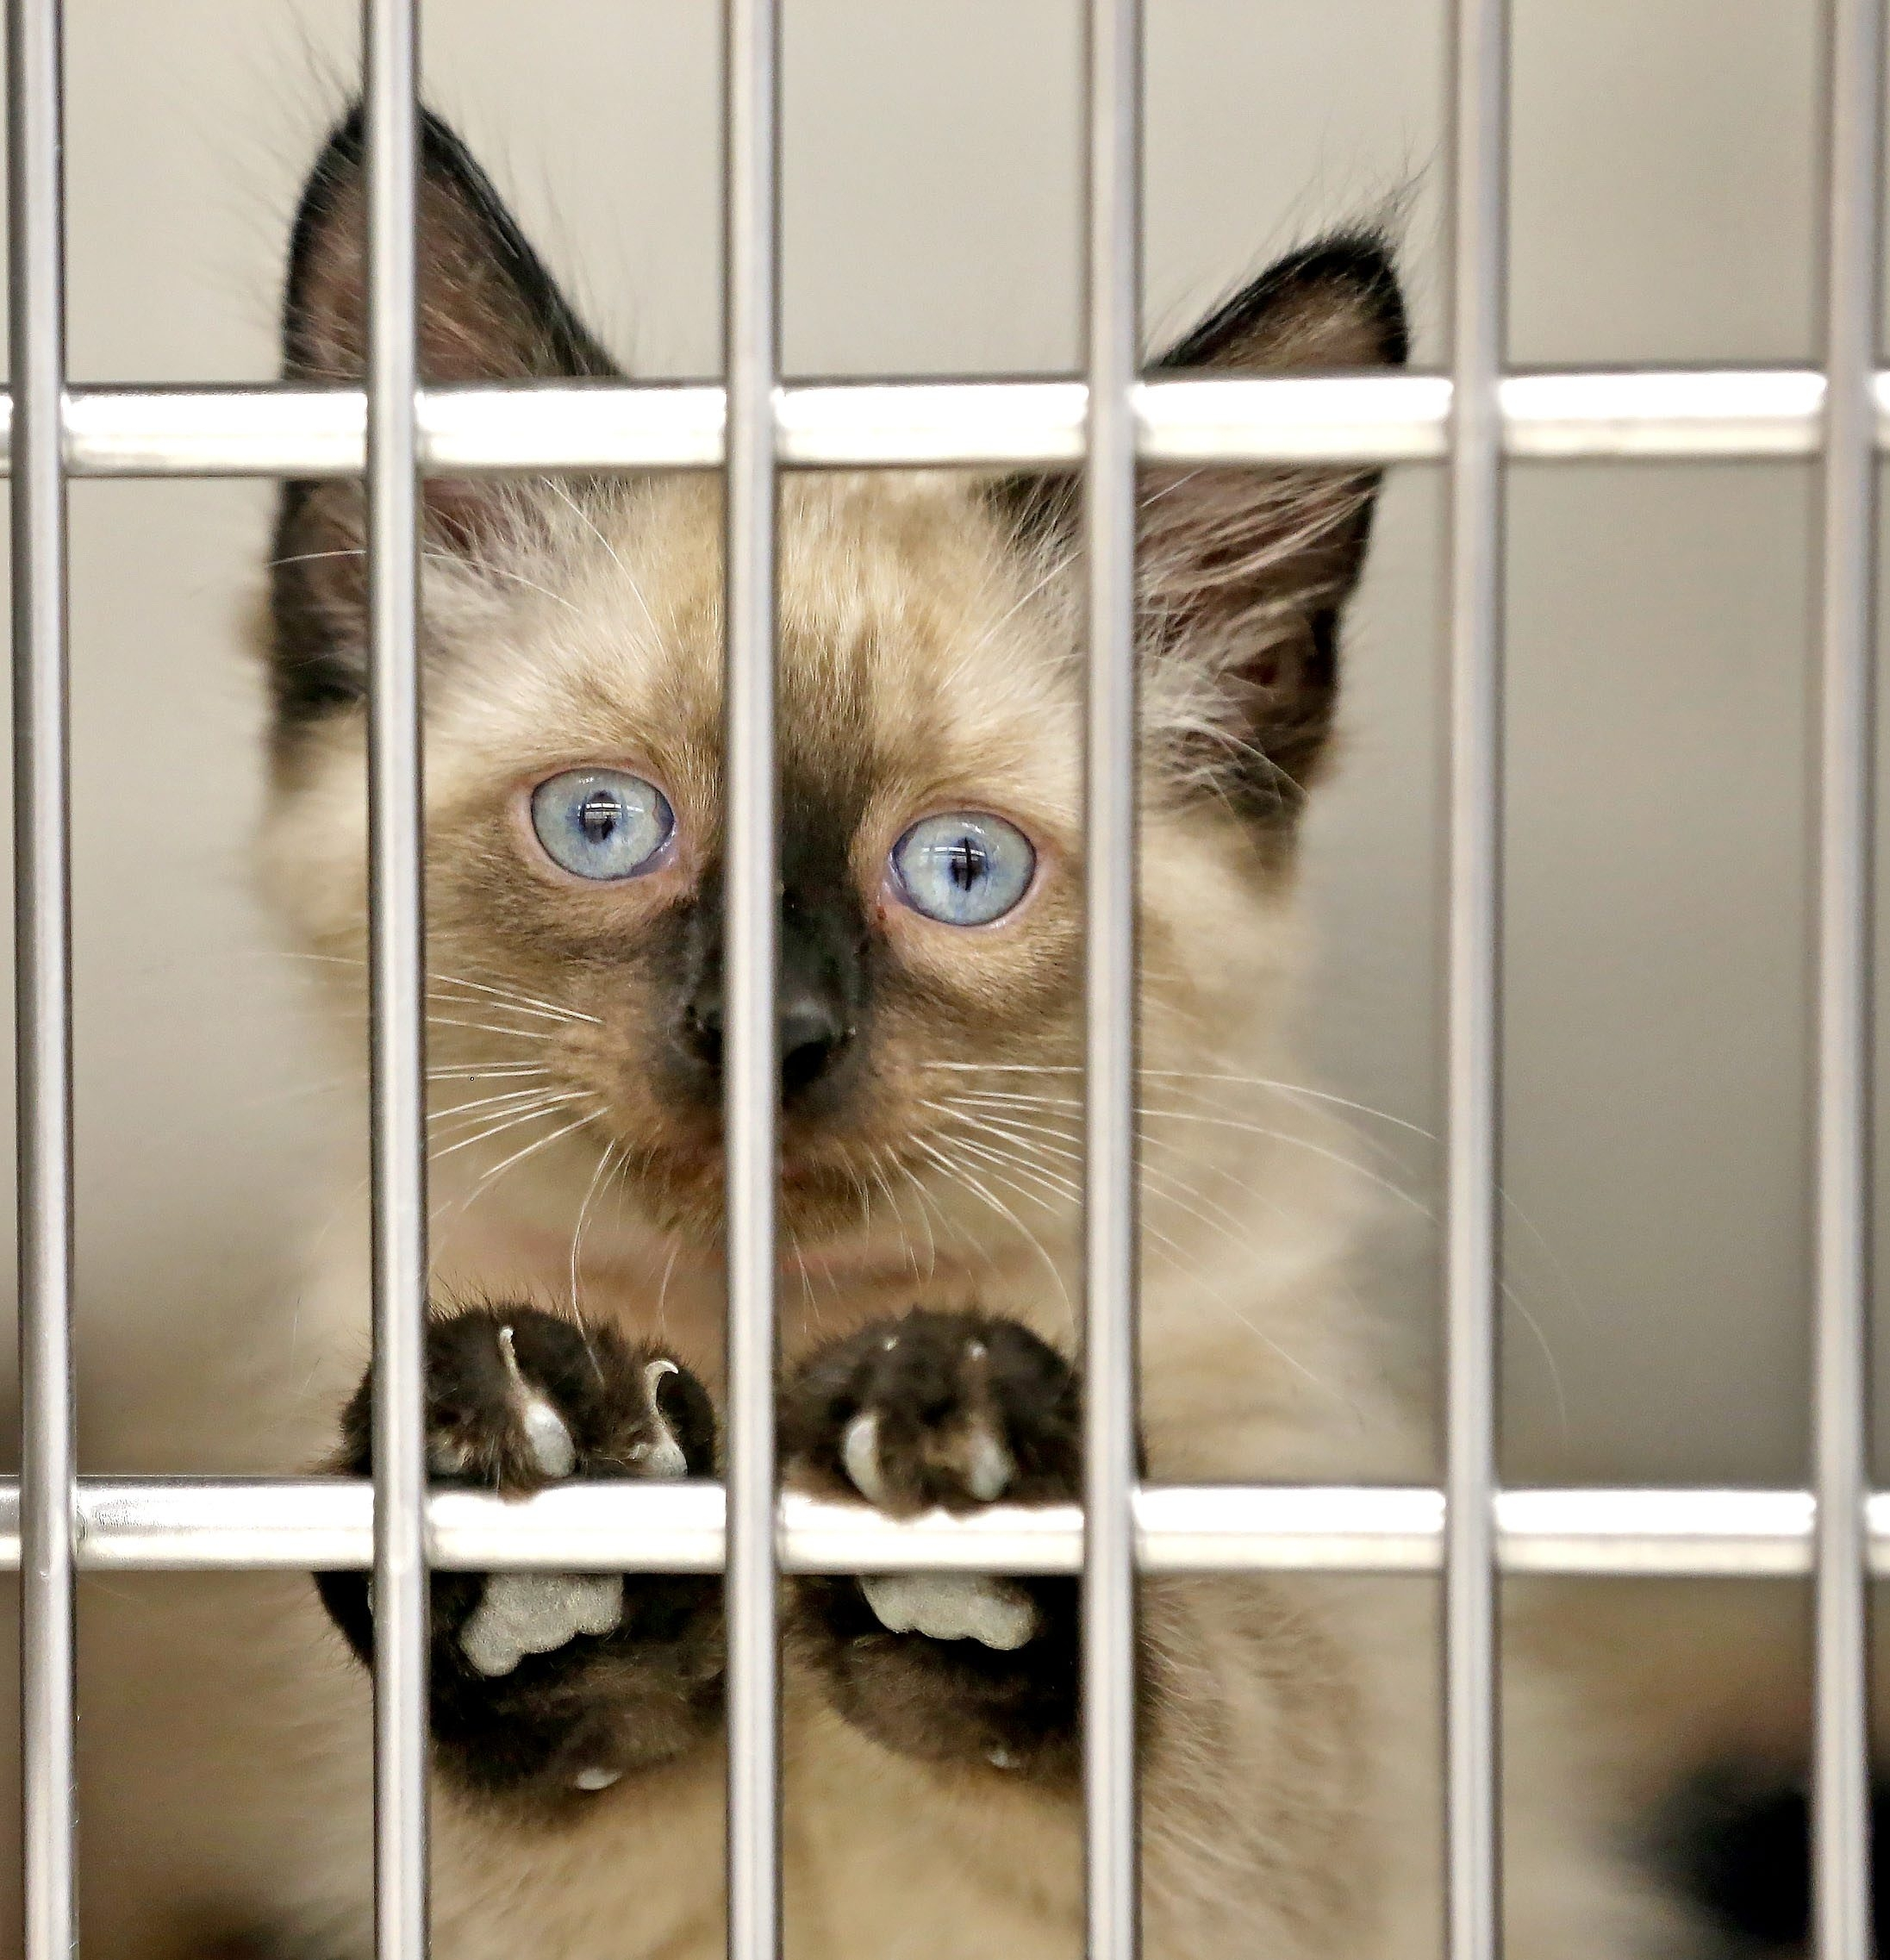 A 2-month-old Siamese mixed stray peers through the bars of its cage at the Erie County SPCA.